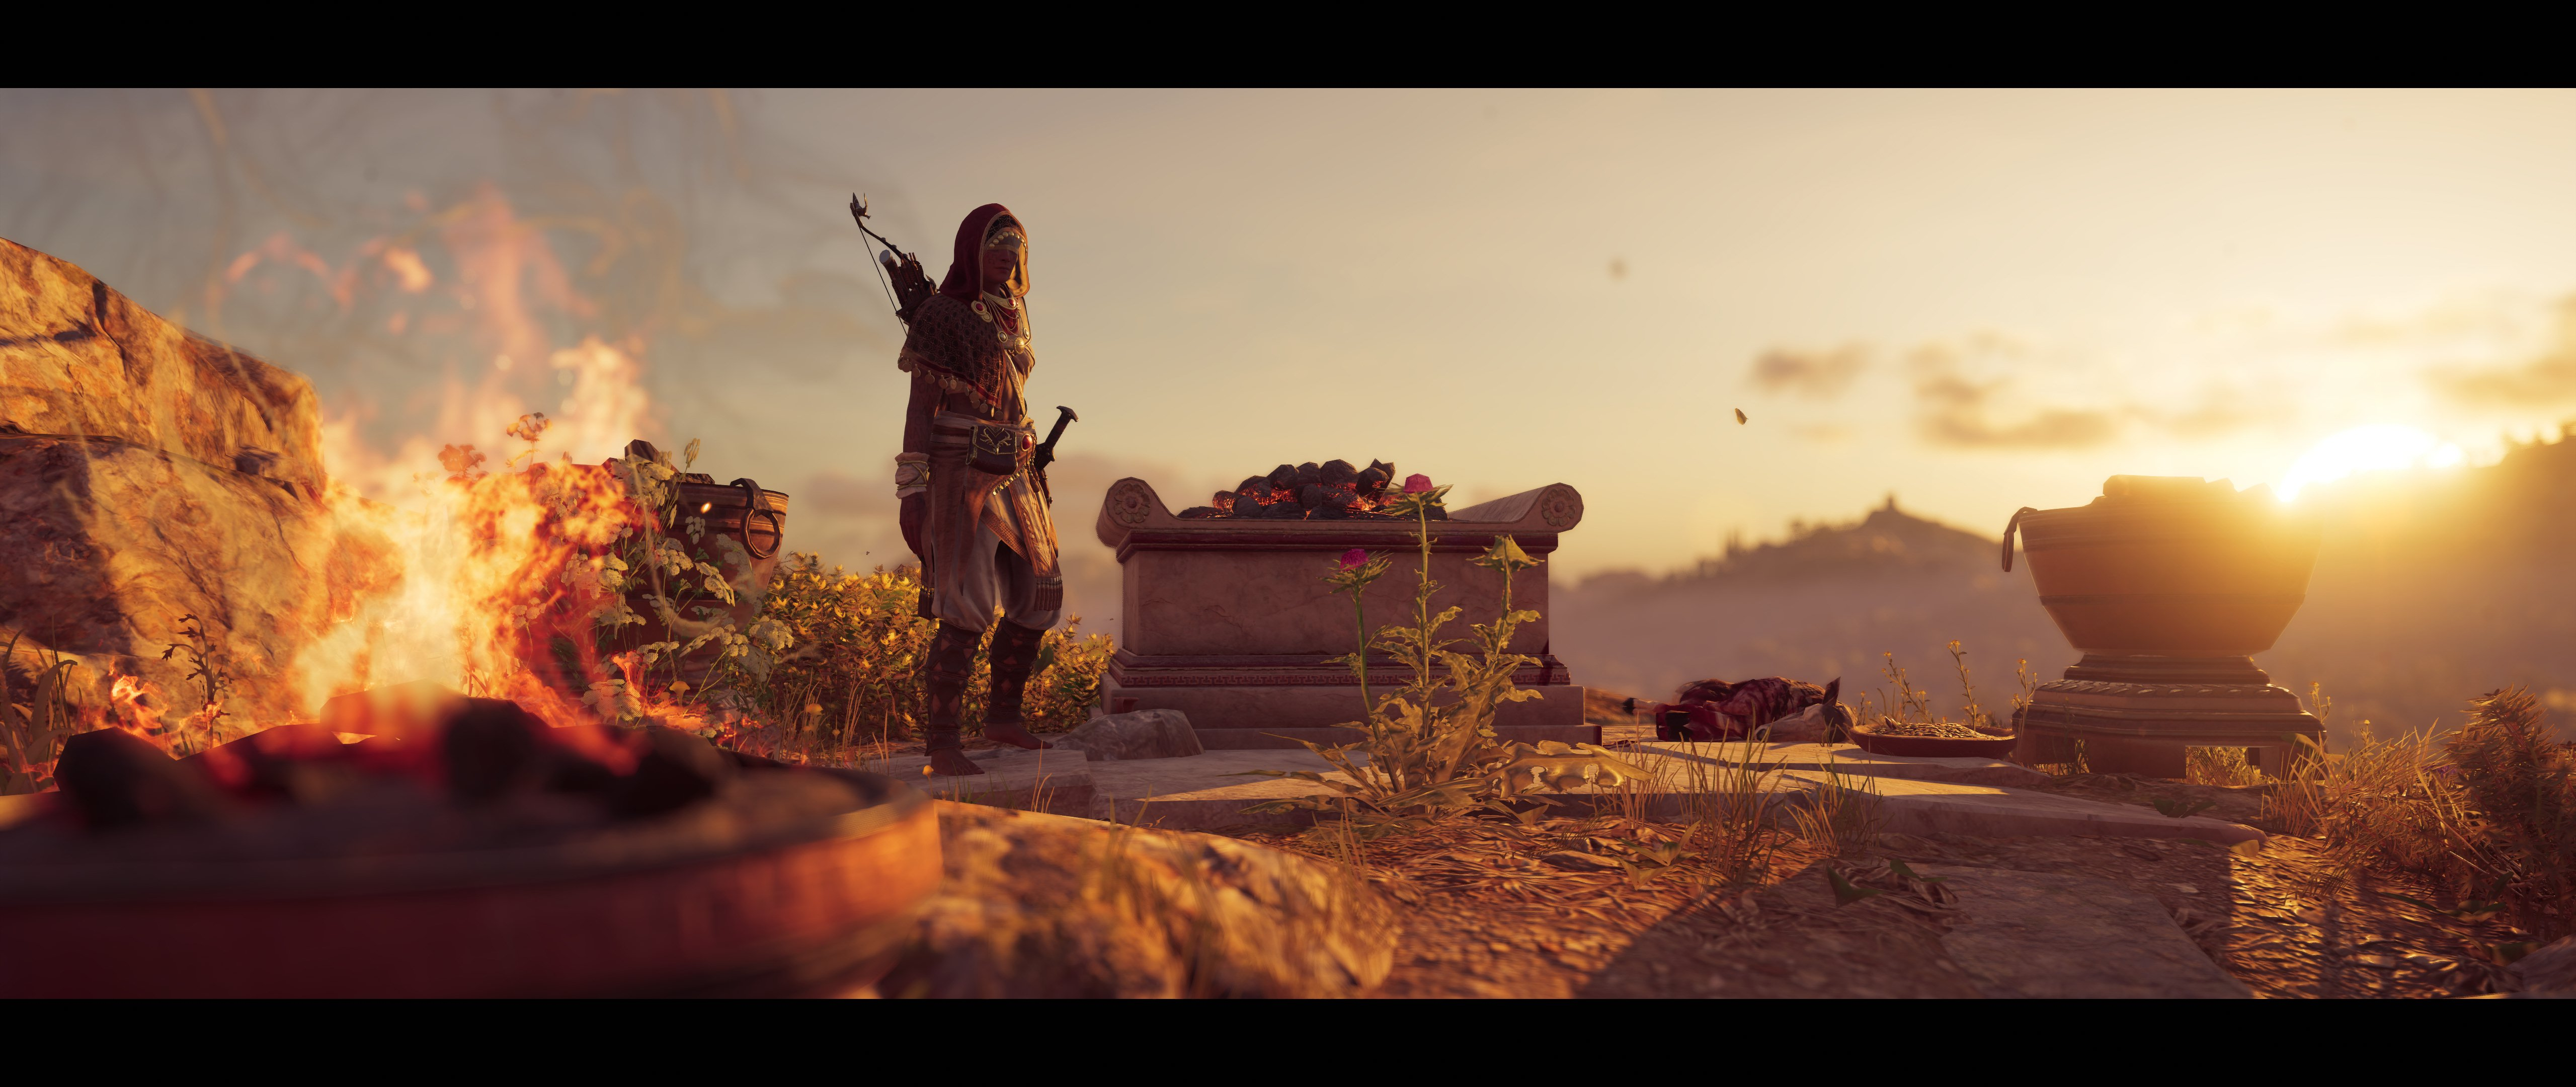 Assassins Creed Assassins Creed Odyssey Video Games Gamer 4gamers